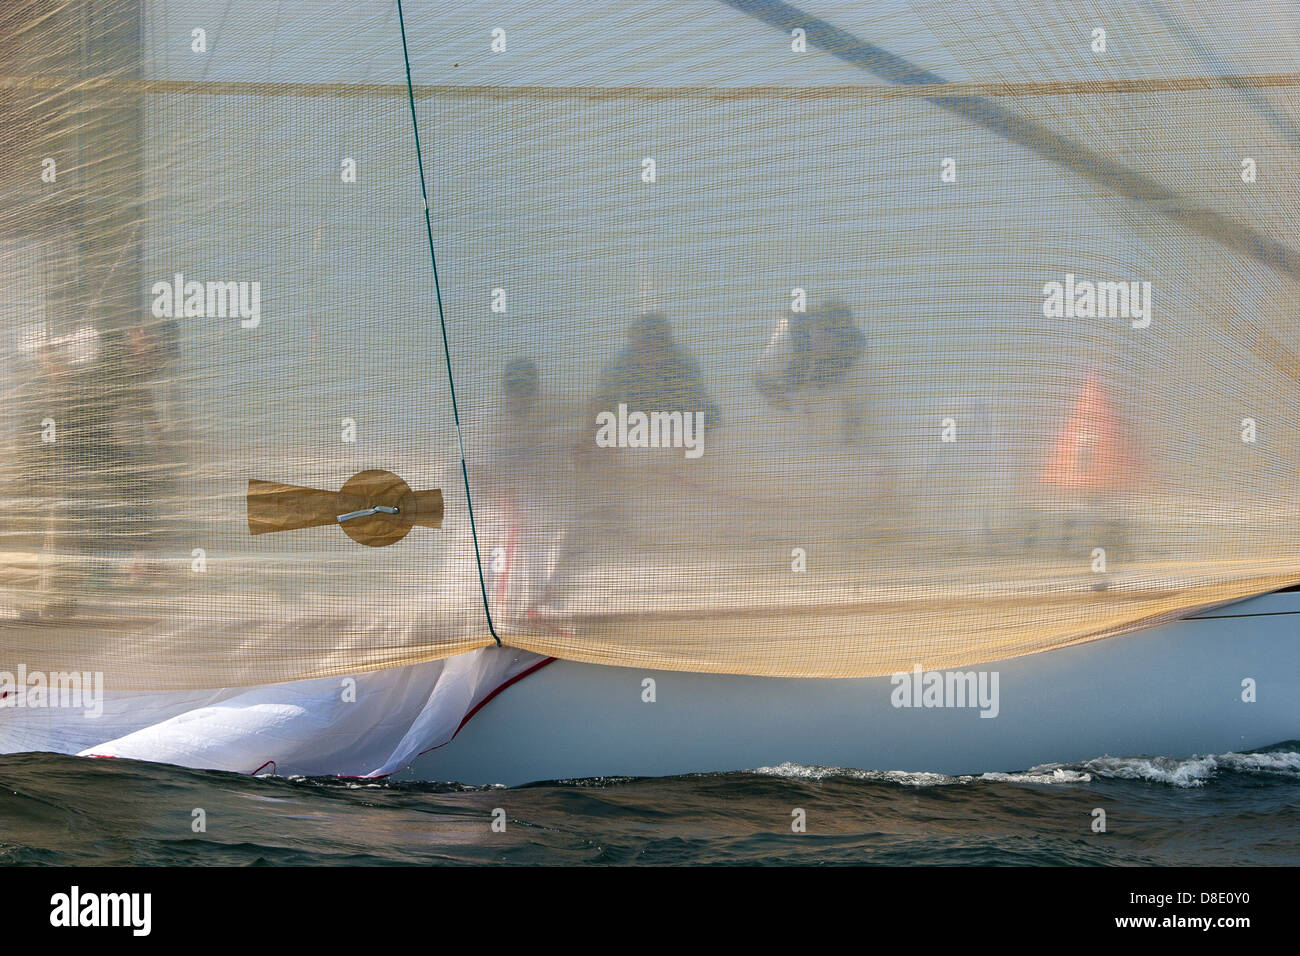 The crew do a headsail change on a twelve meter Americas Cup sailing boat racing in Narragansett Bay in Rhode Island - Stock Image